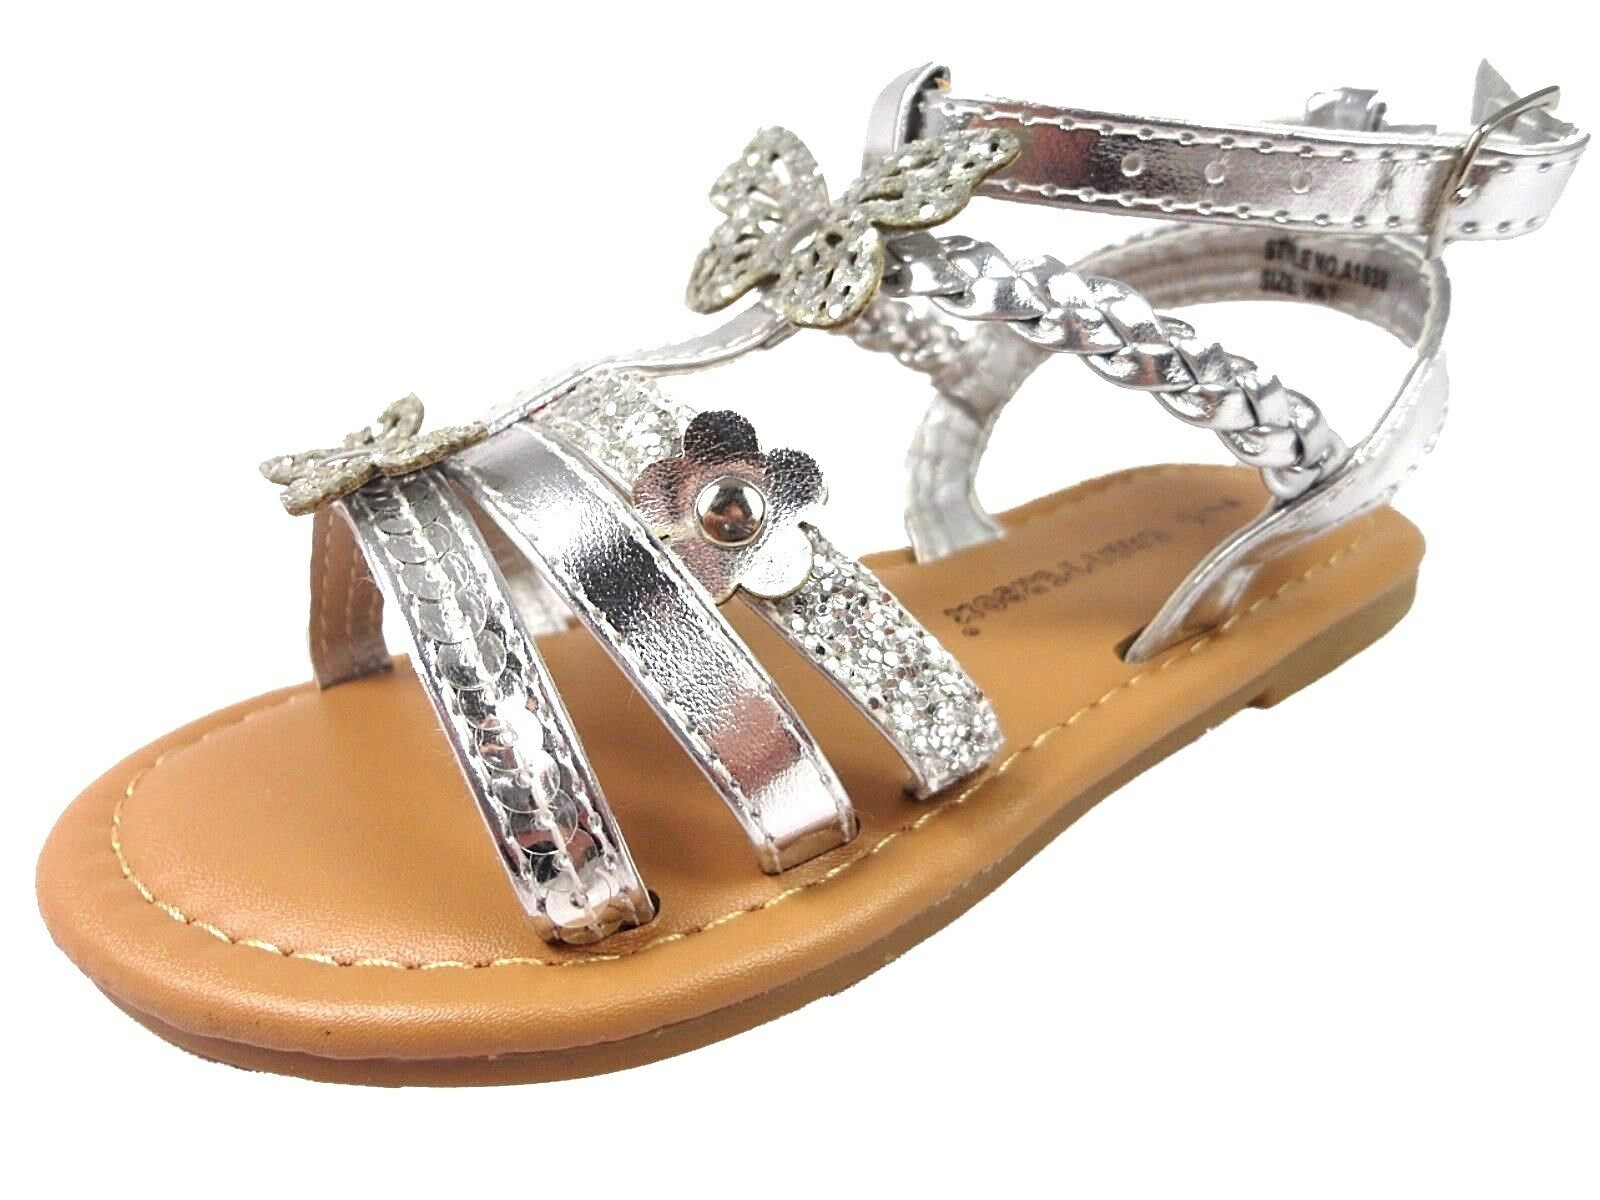 GIRLS SANDAL STRAPPY SUMMER HOLIDAY CHATTEROX SANDALS